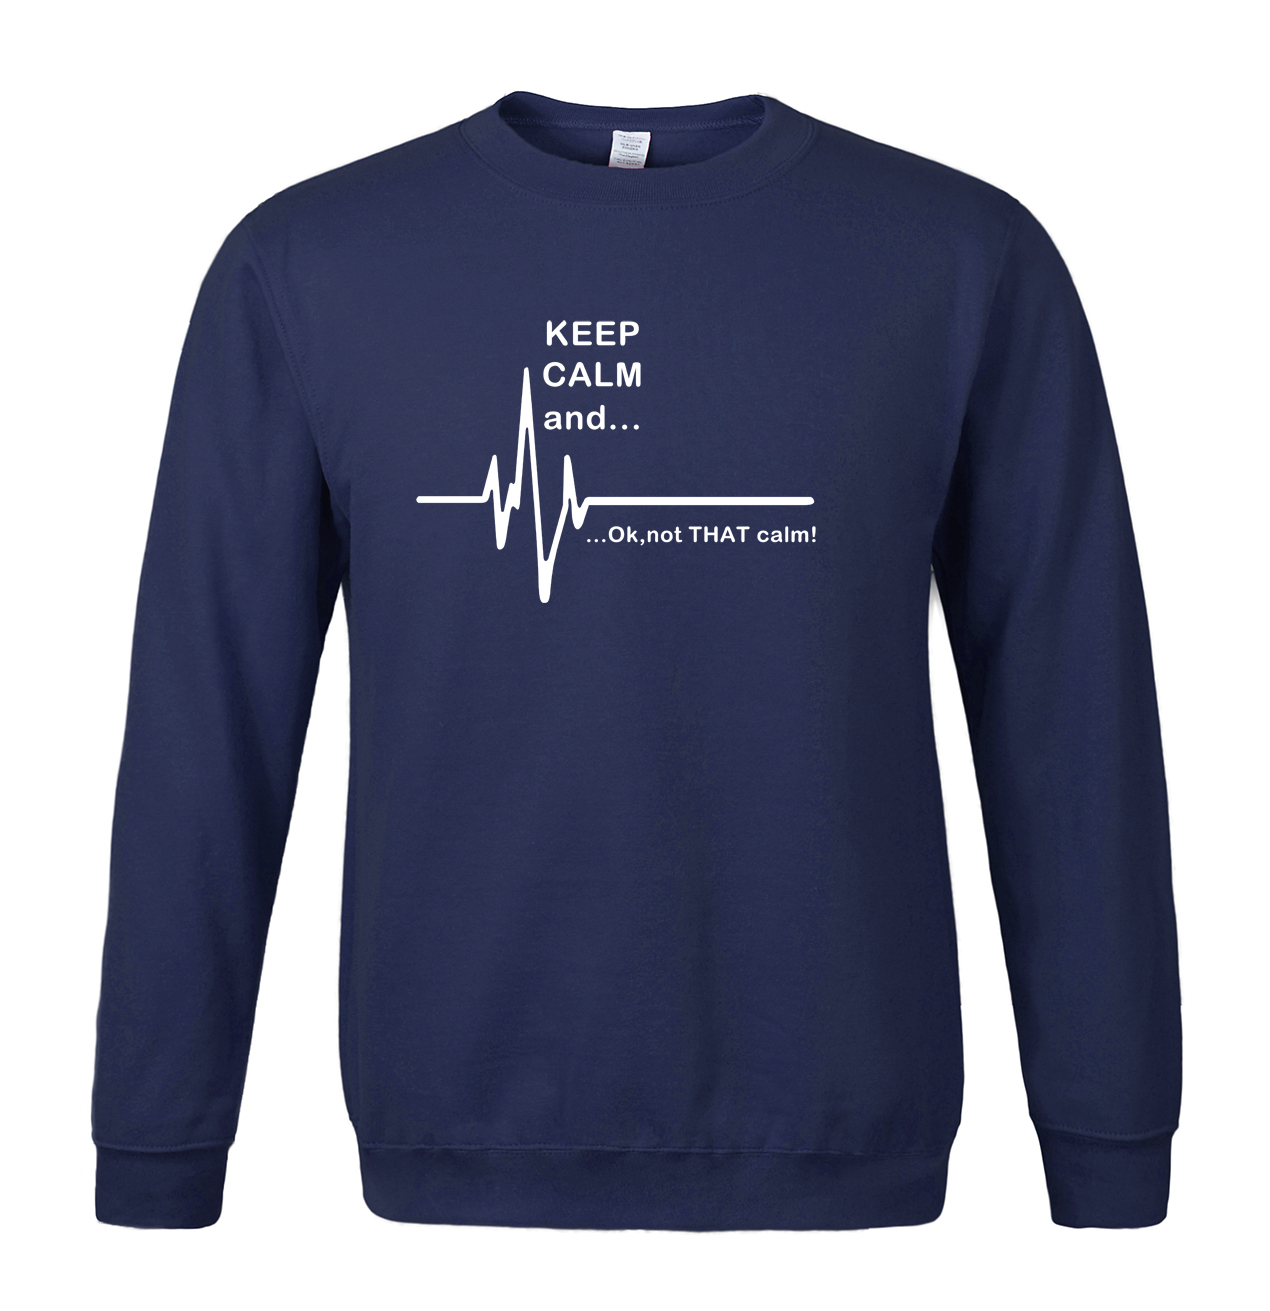 Sweatshirt Fleece Calm Funny Tracksuits Fashion No EKG Heart-Rate-Print That And...not